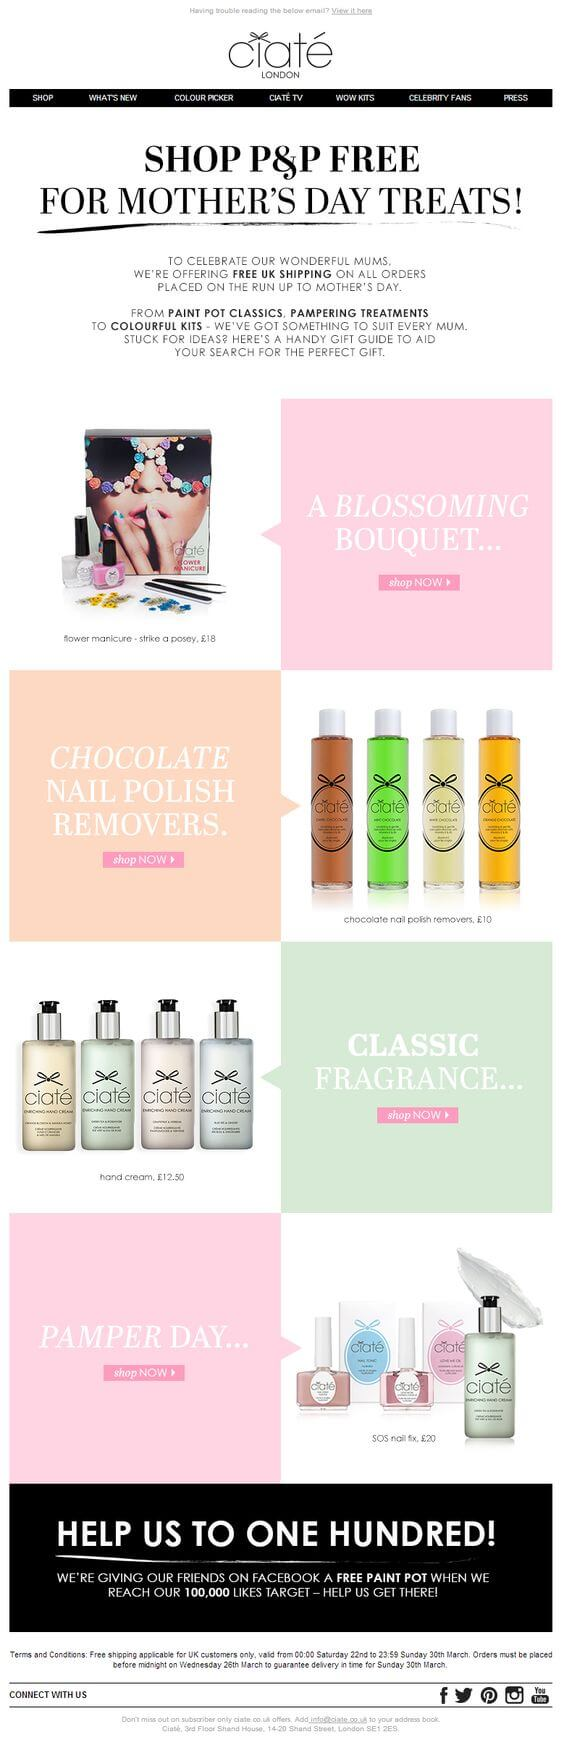 Ciate-mother's day email inspirations